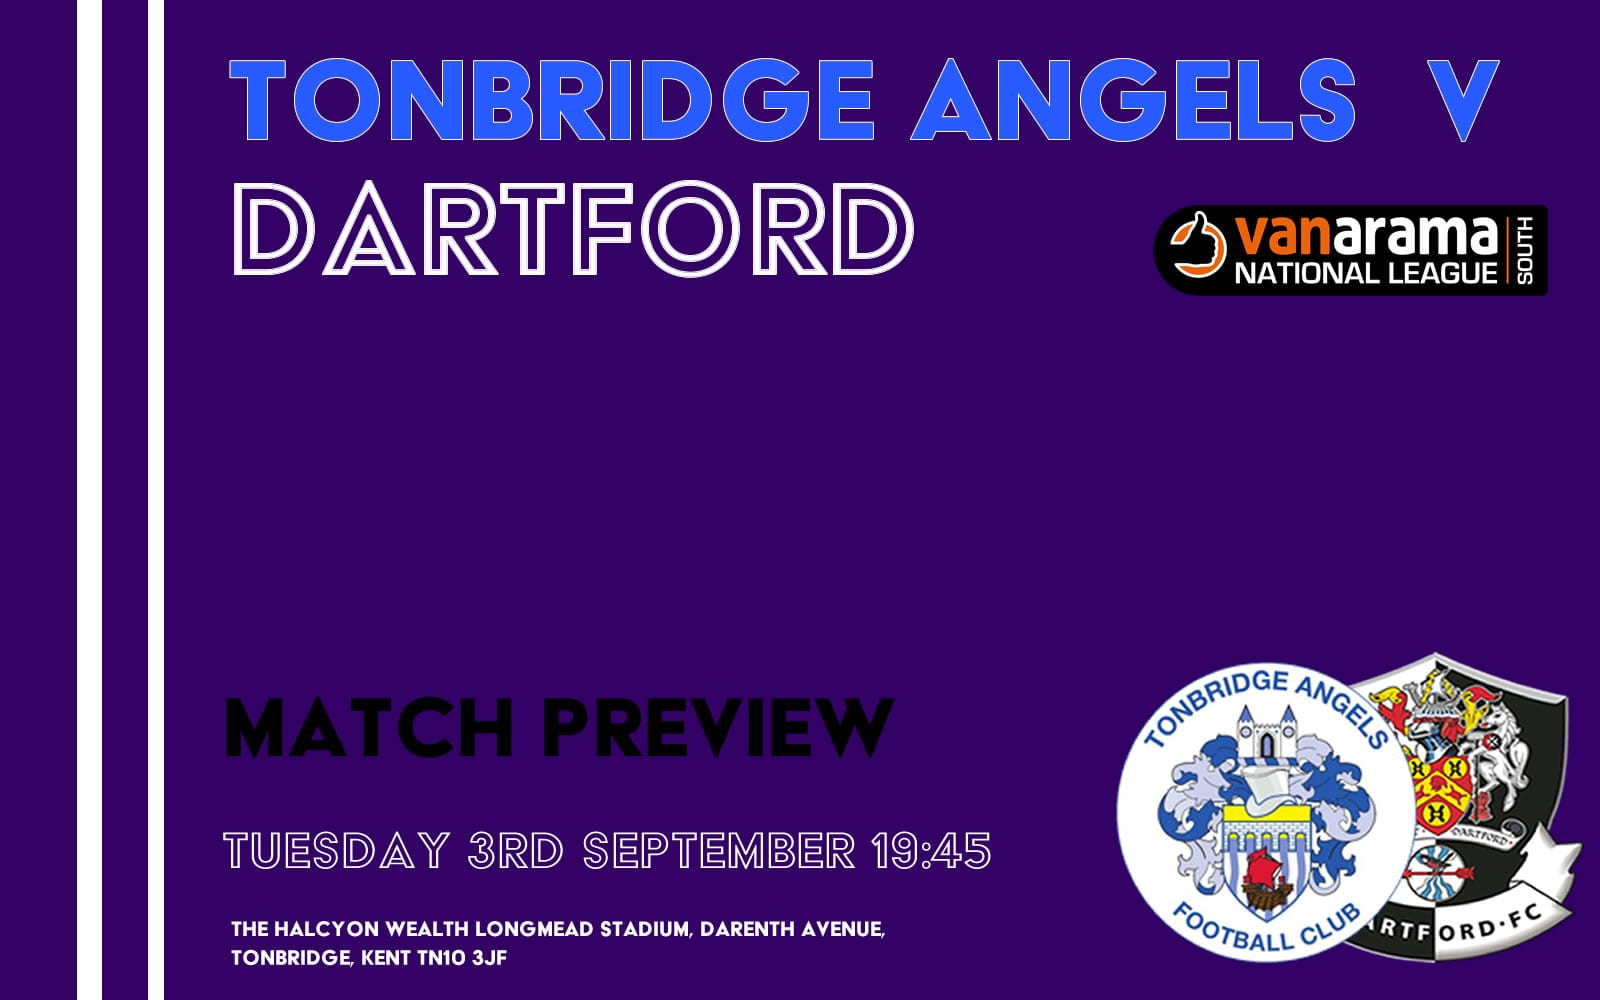 Tonbridge Angels v Dartford